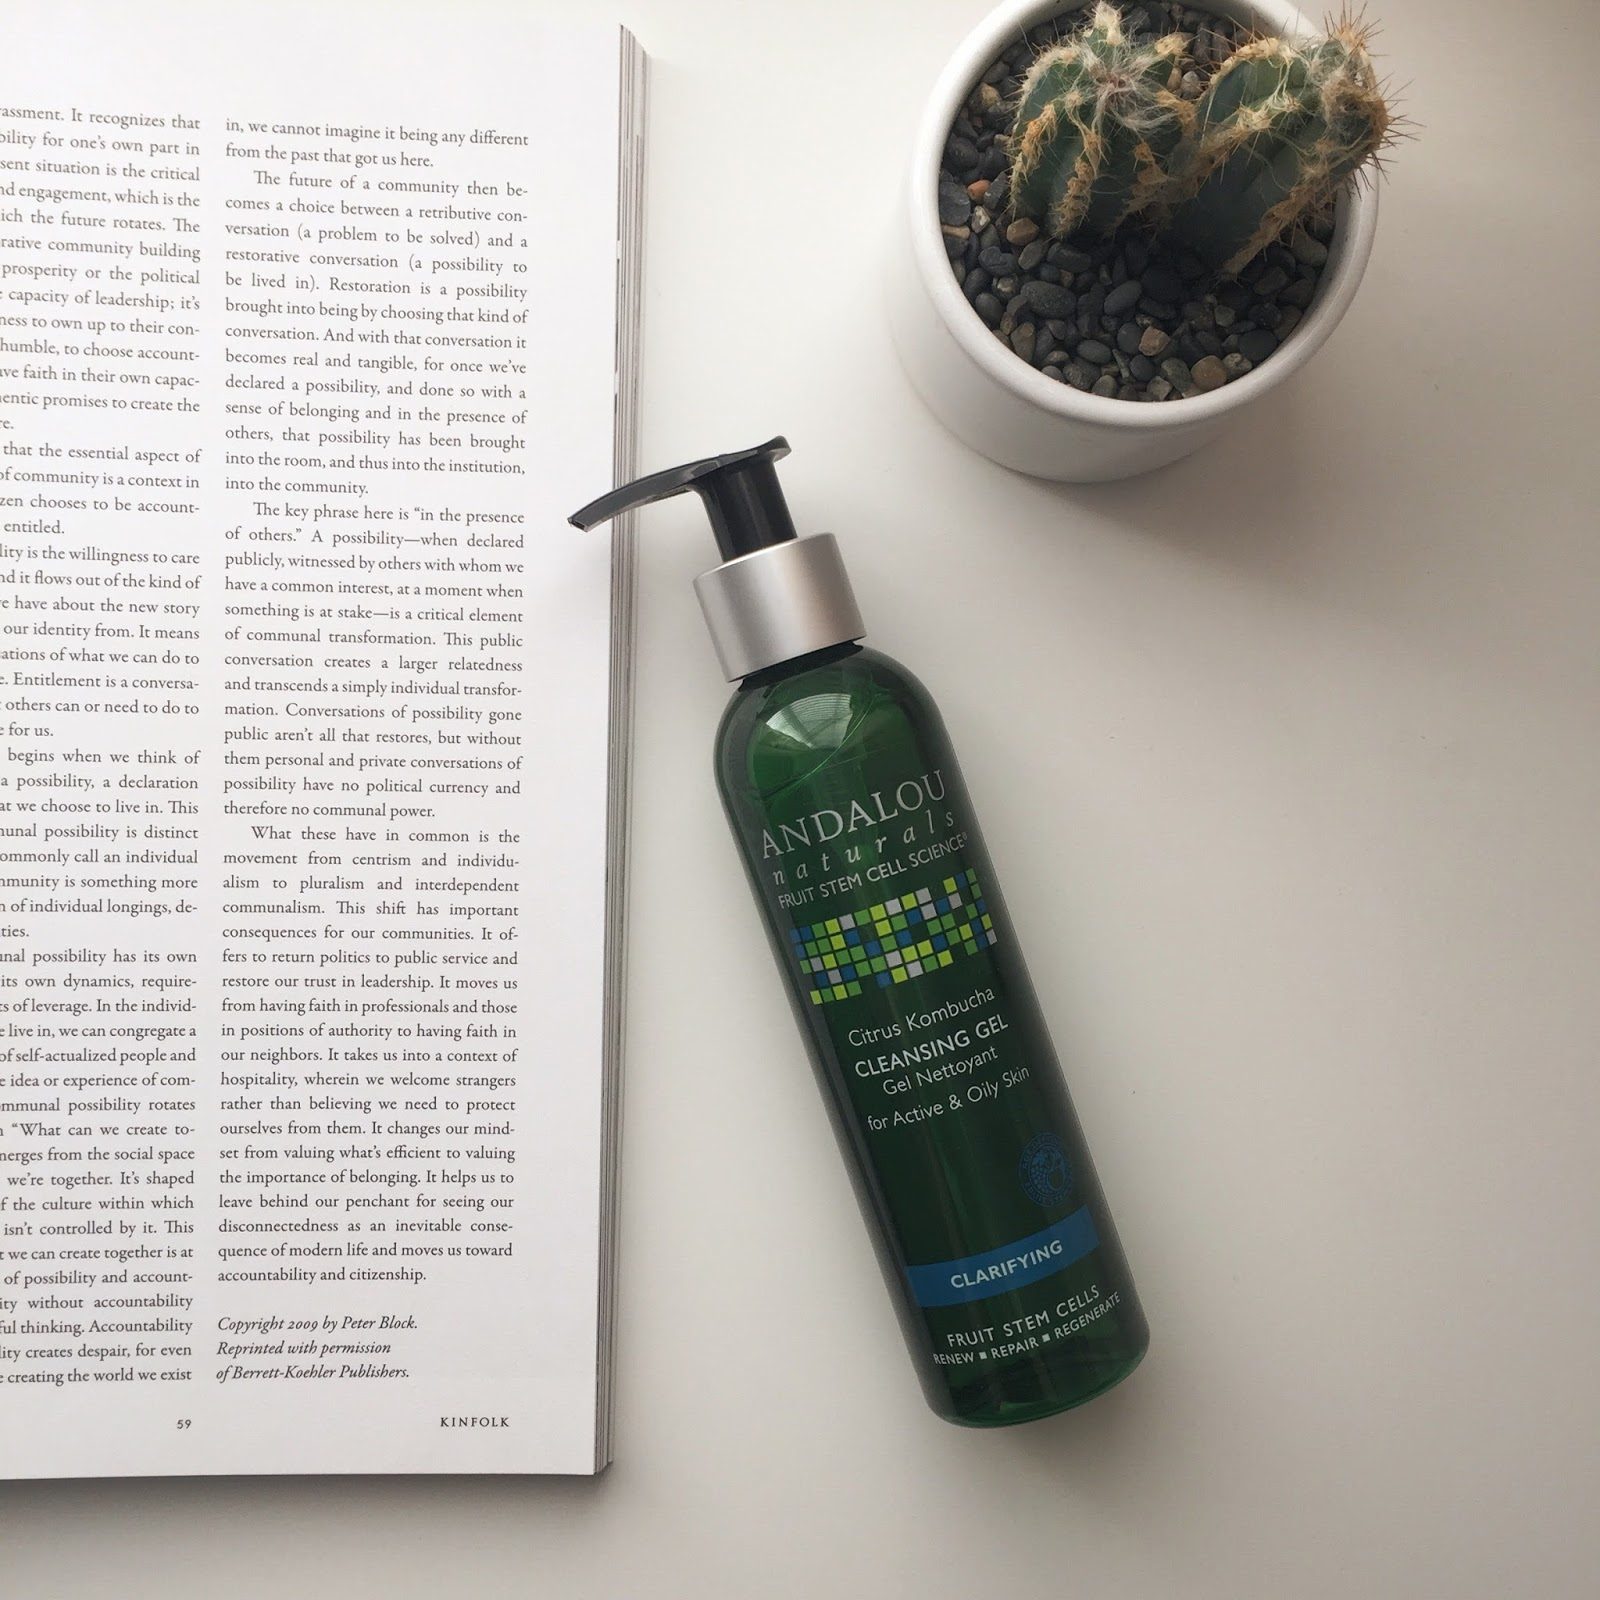 Andalou Naturals Citrus Kombucha Cleansing Gel for Active & Oily Skin